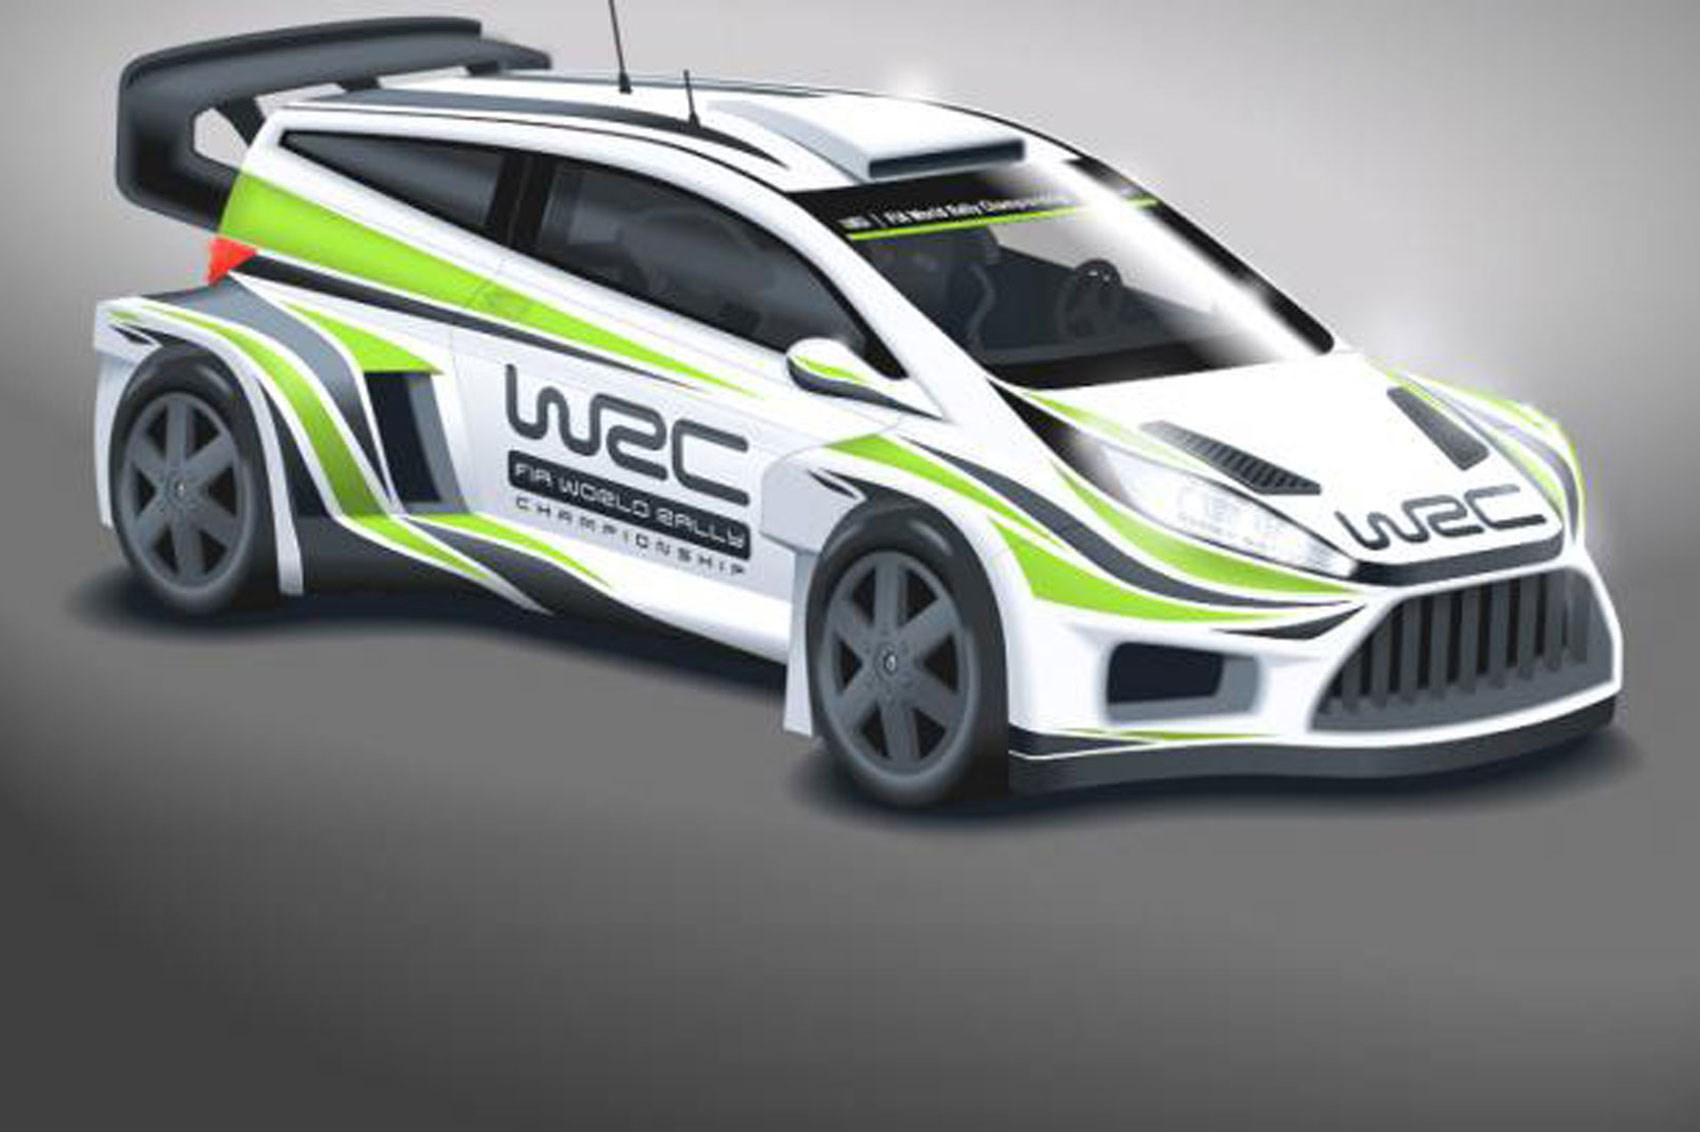 Ultrablogus  Stunning Wild New Look For Wrc Cars In  By Car Magazine With Fetching Wrc Cars Will Get Wider Bodies Bigger Wings And More Power For  With Easy On The Eye Wood And Metal Interior Design Also Interior Color Scheme In Addition Interior Colour Combinations And  Mustang Interior As Well As Land Rover Defender Interior Parts Additionally Cube Interior Solutions From Carmagazinecouk With Ultrablogus  Fetching Wild New Look For Wrc Cars In  By Car Magazine With Easy On The Eye Wrc Cars Will Get Wider Bodies Bigger Wings And More Power For  And Stunning Wood And Metal Interior Design Also Interior Color Scheme In Addition Interior Colour Combinations From Carmagazinecouk